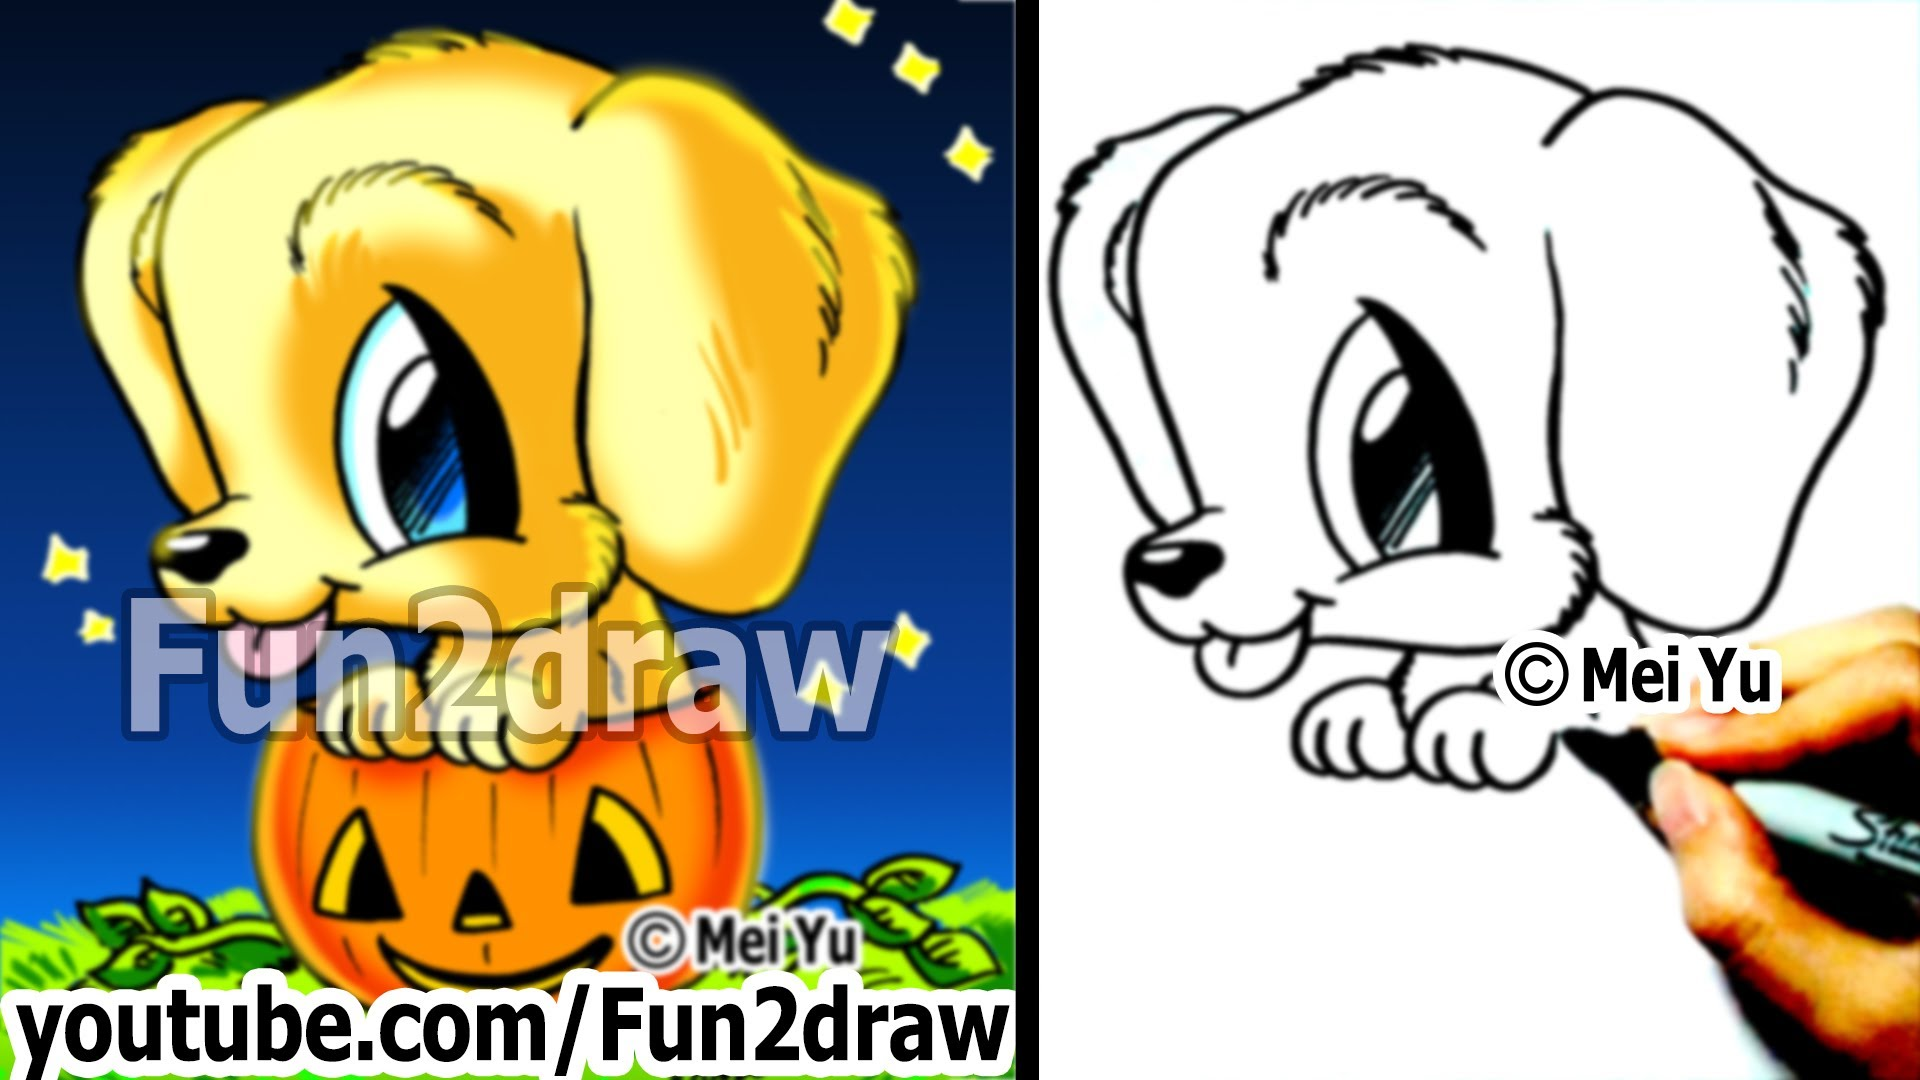 Drawn puppy fun2draw Cute Drawings Golden Dog a